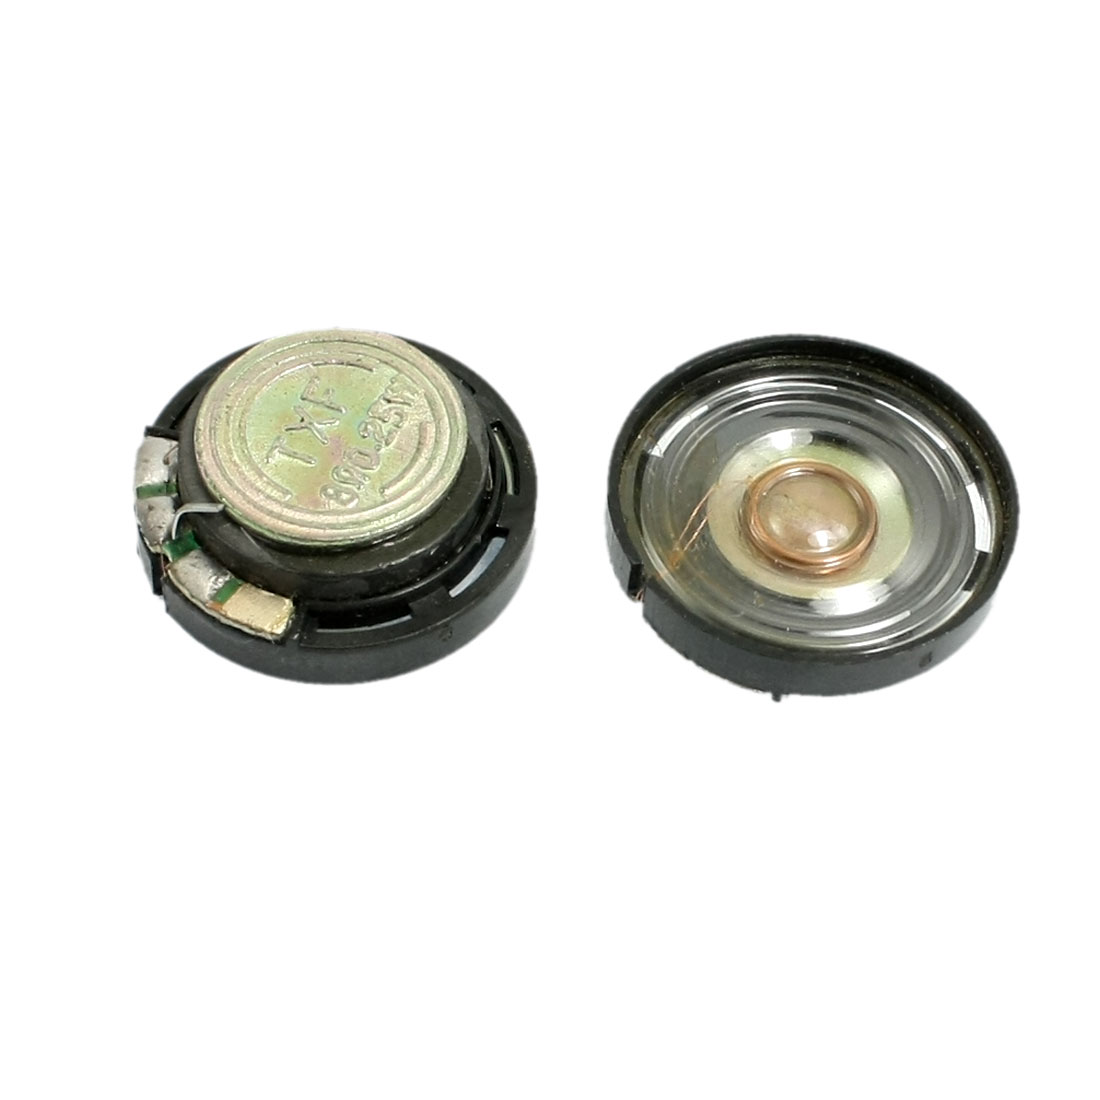 "0.8"" Diameter Round Slim External Magnet Speaker Horn 8 Ohm 0.25W 2 Pcs"